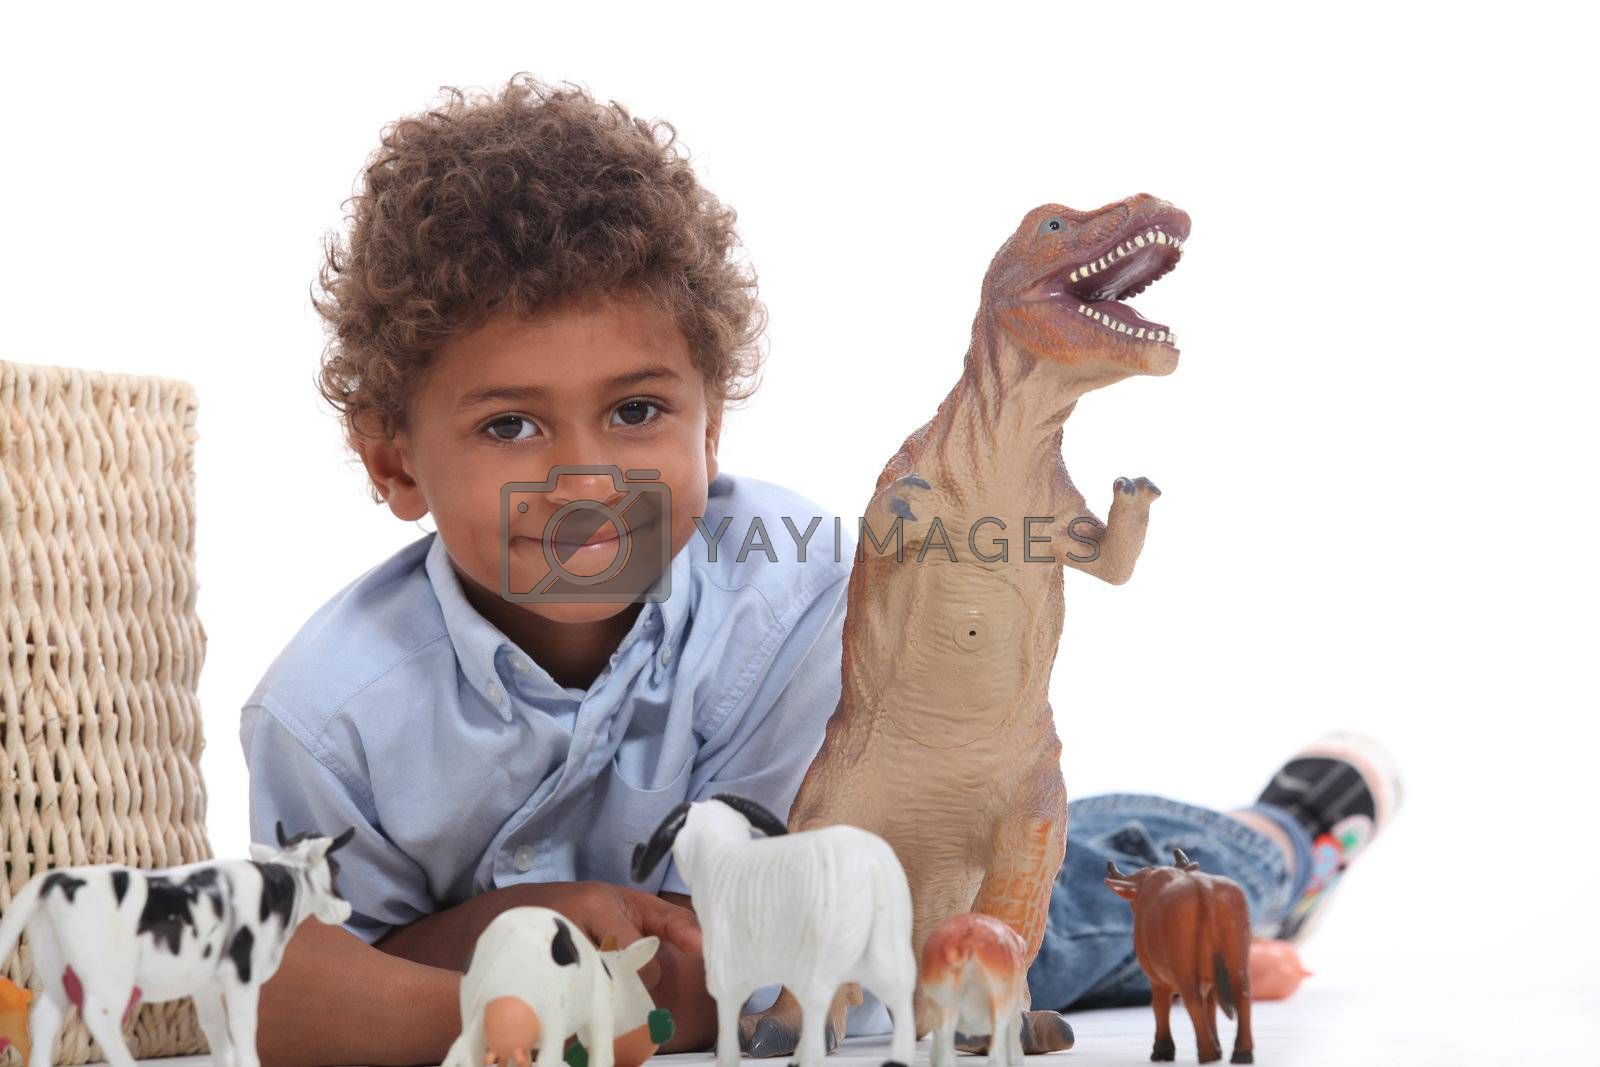 Young boy playing with a toy dinosaur and collection of domestic animals